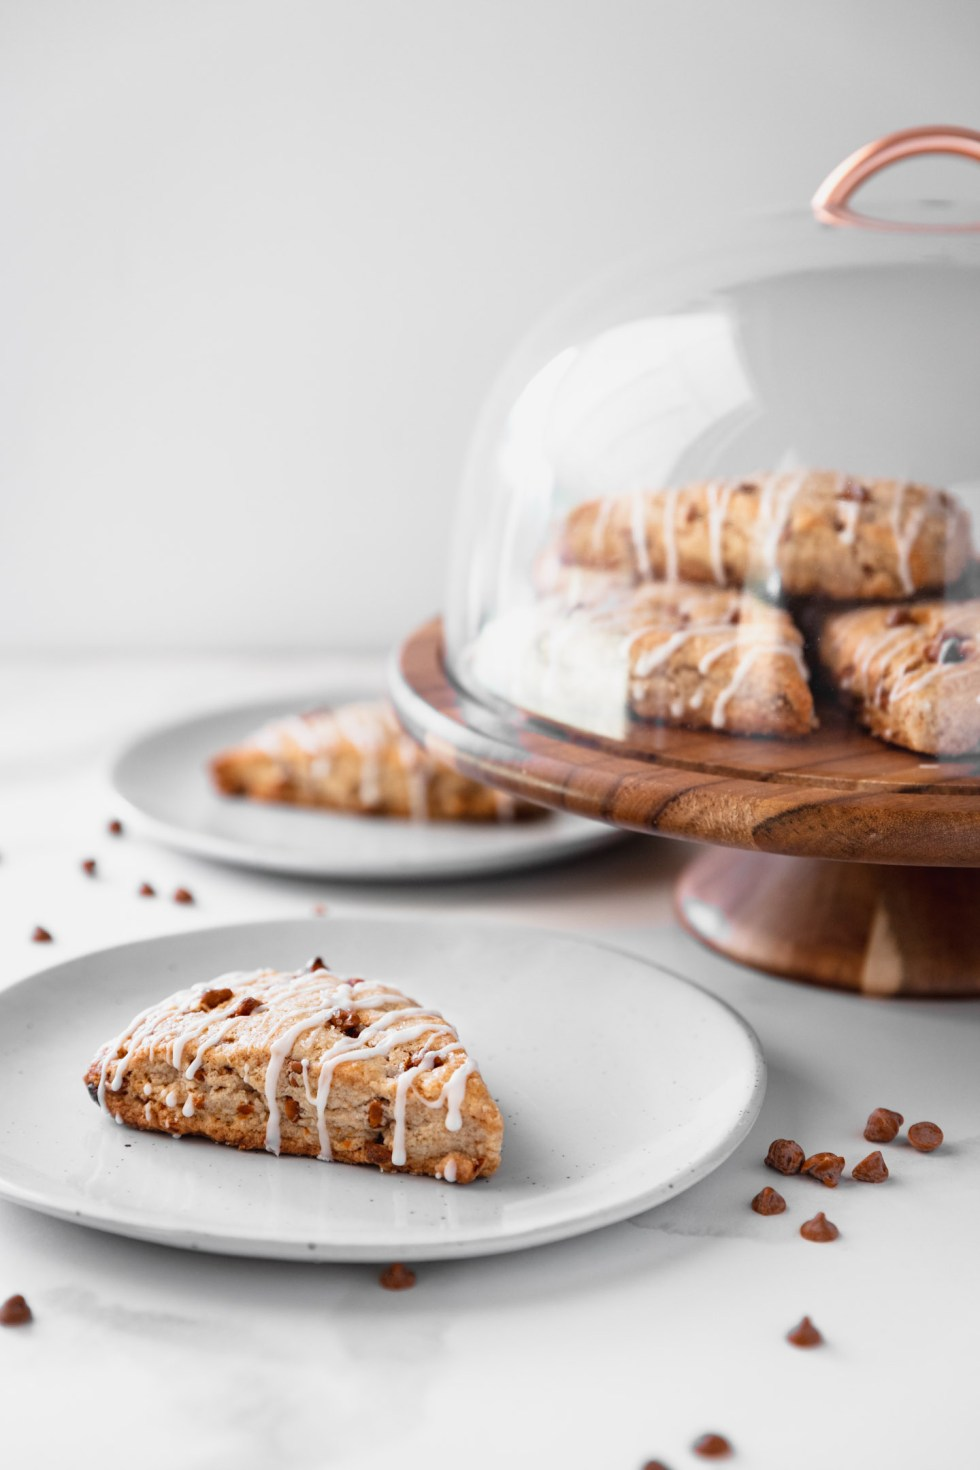 Cinnamon chip scone on a small plate with extras on a cake platter